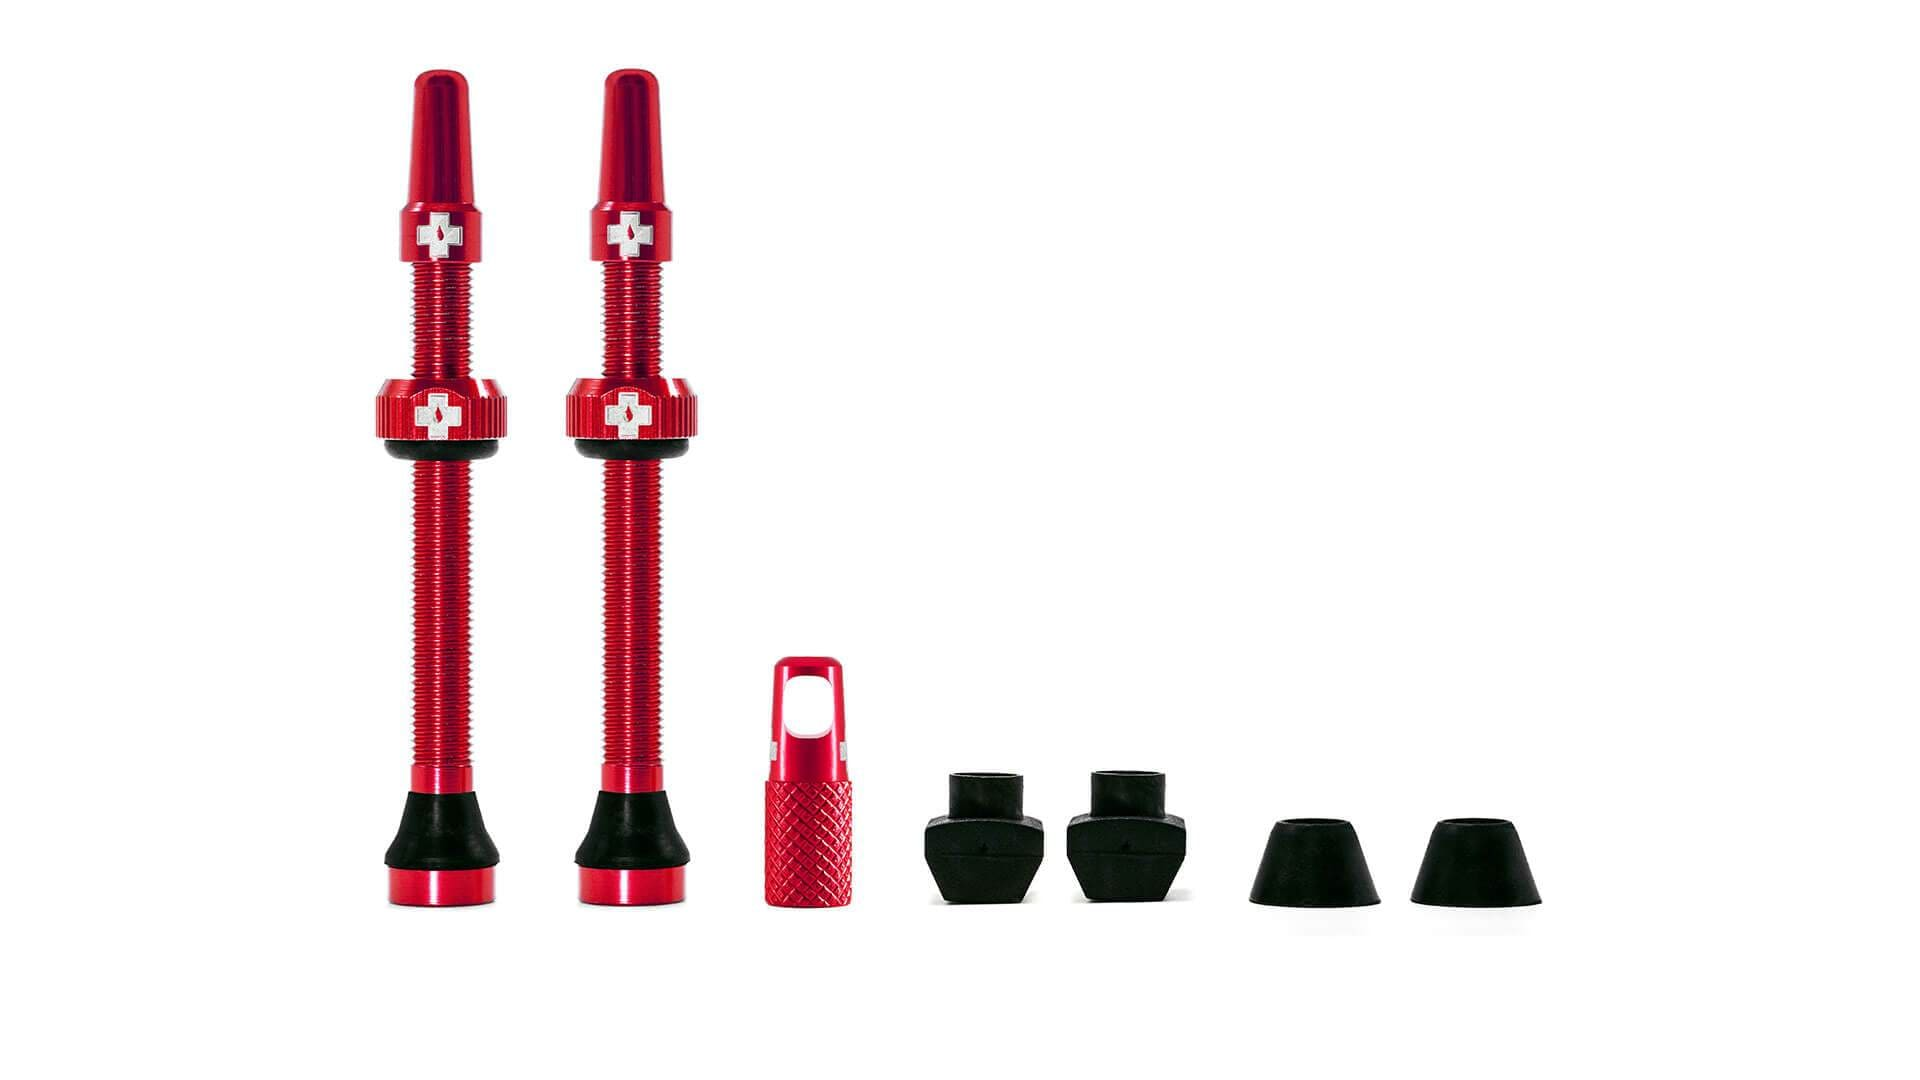 Muc-Off Ventil, Tubeless Valve Kit, Red